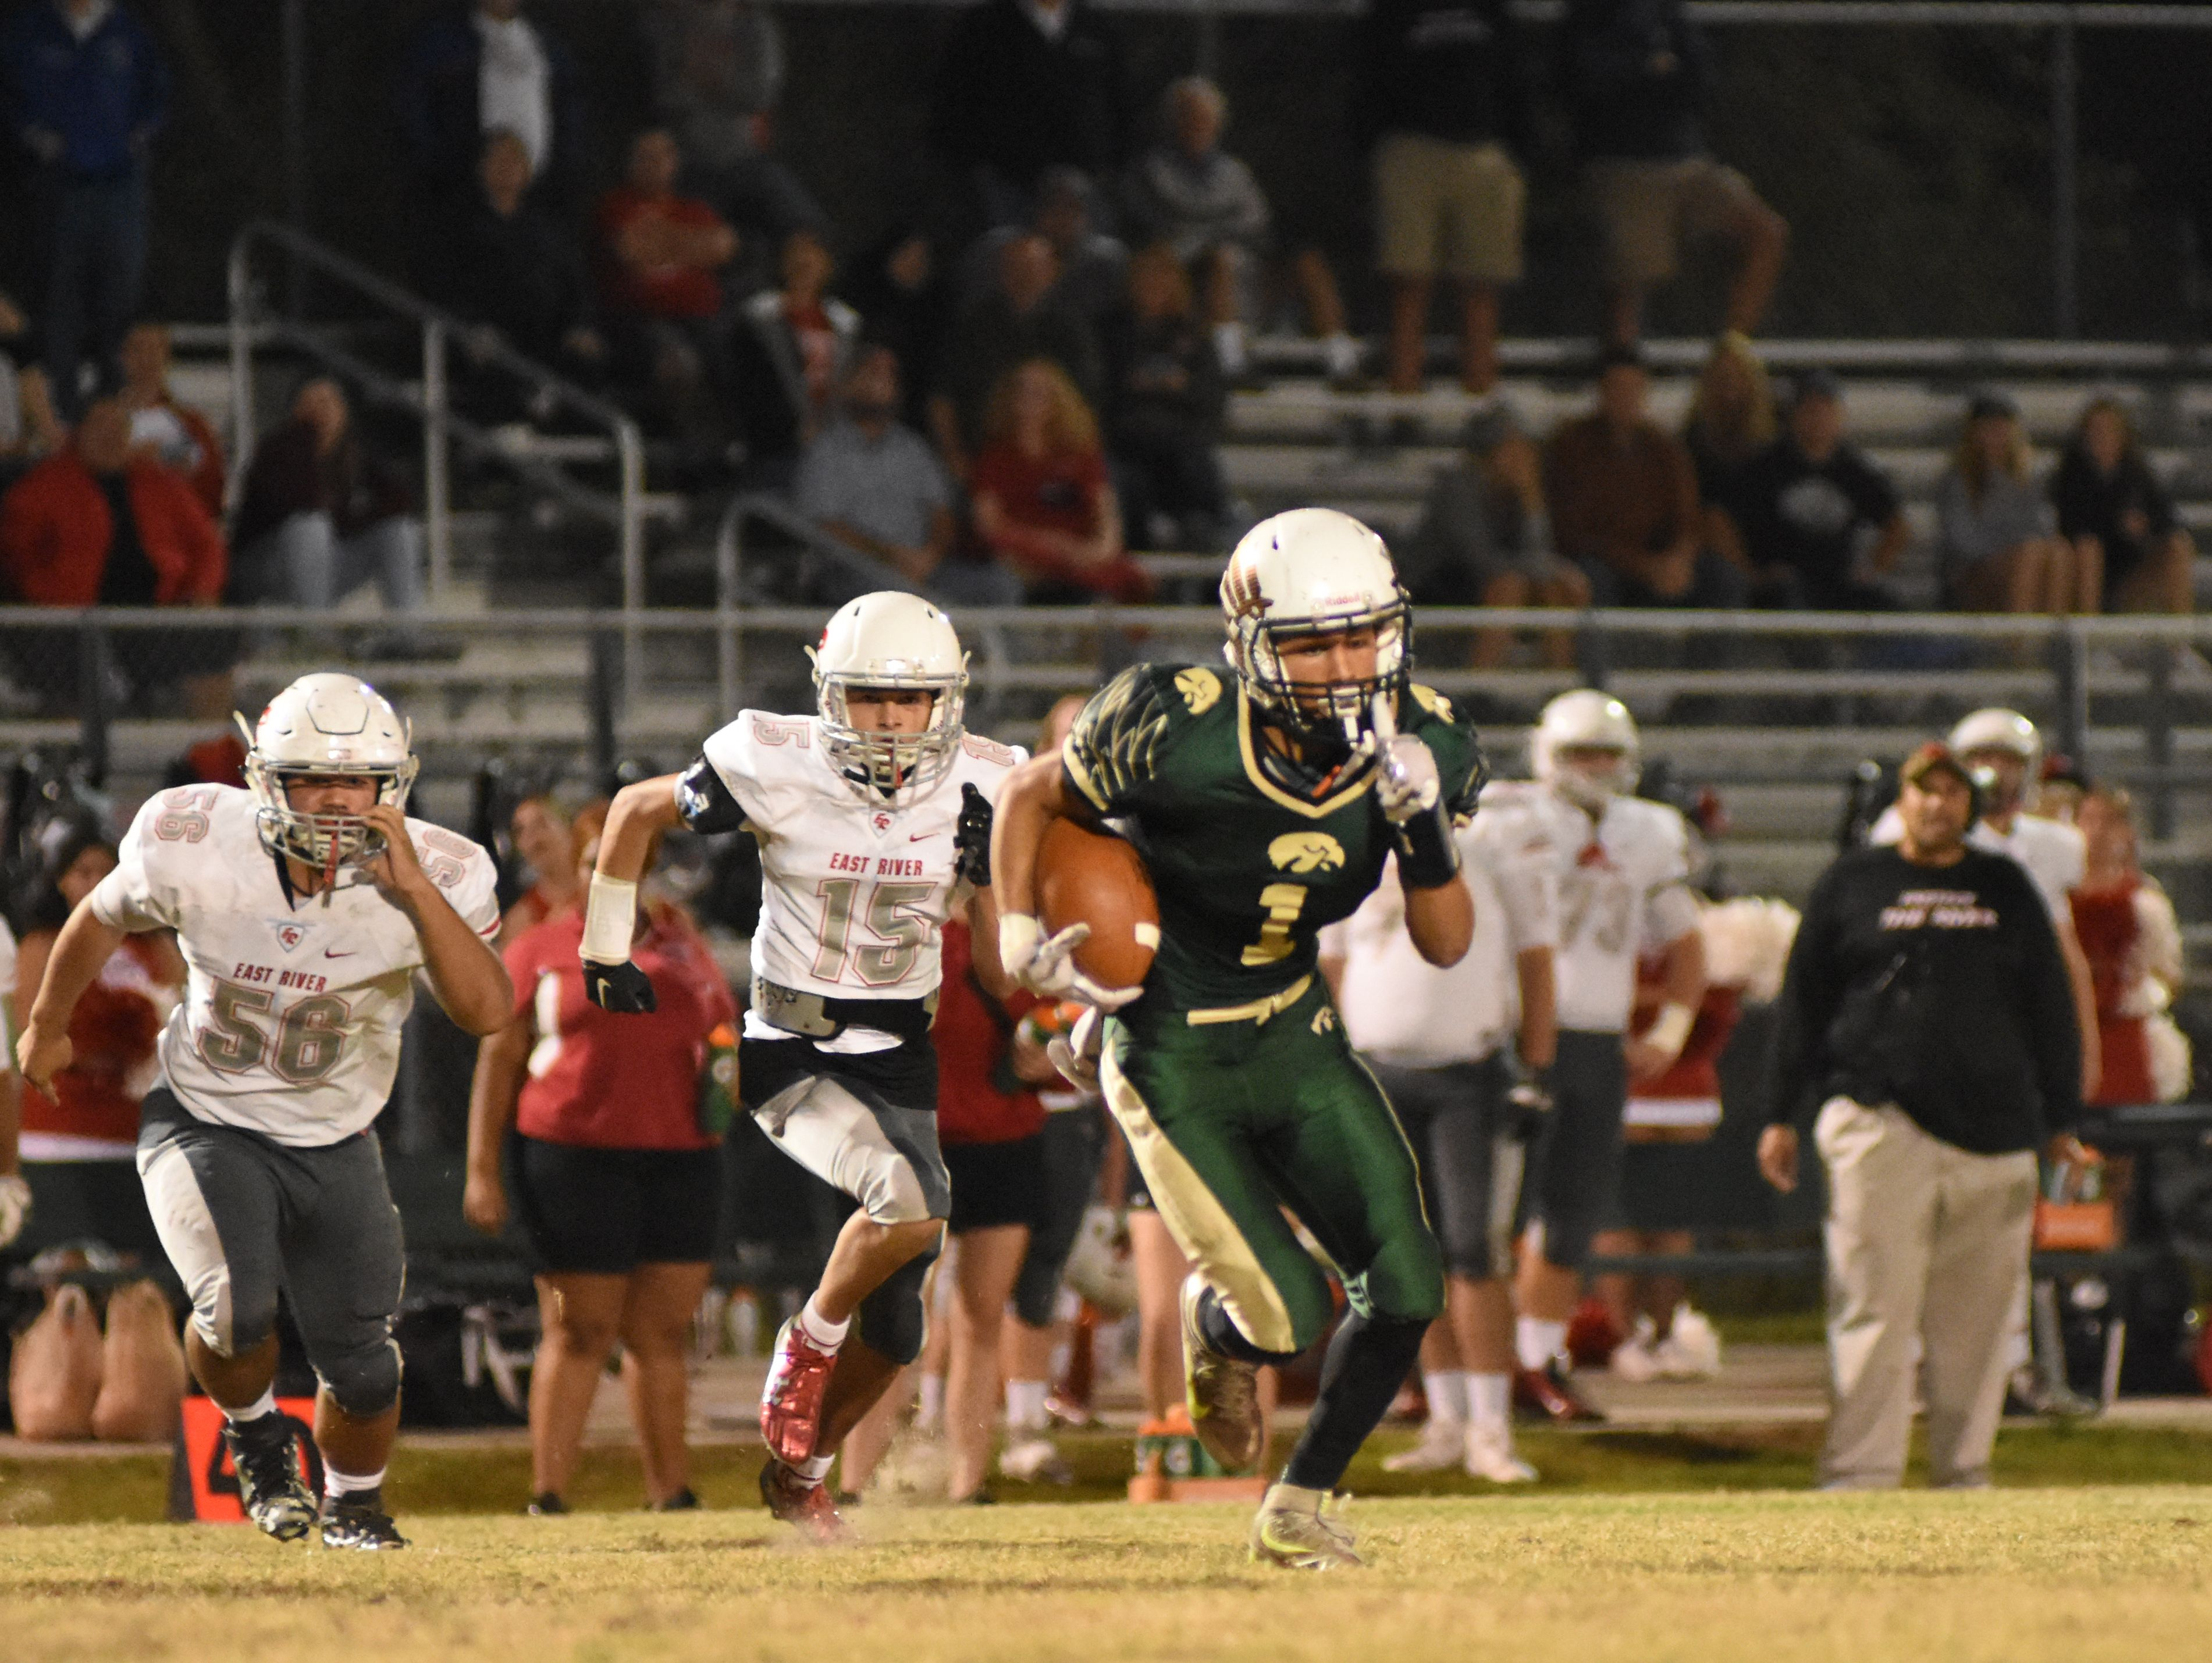 Viera High's Travis Jones (1) is pursued by East River's Bryce Weir (15) and Isaias Poche (50).